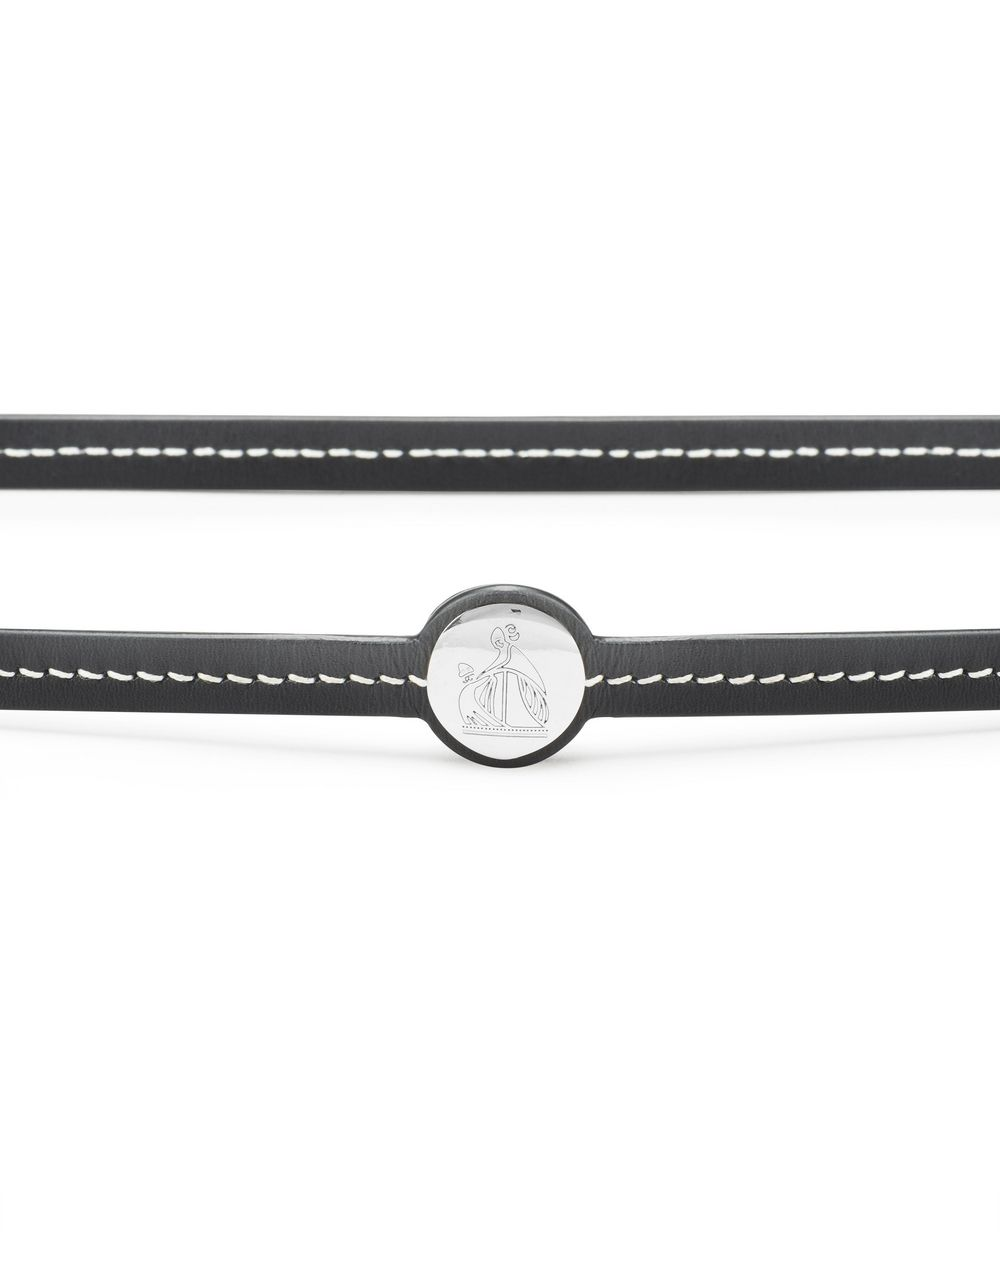 SLIM LEATHER BELT - Lanvin